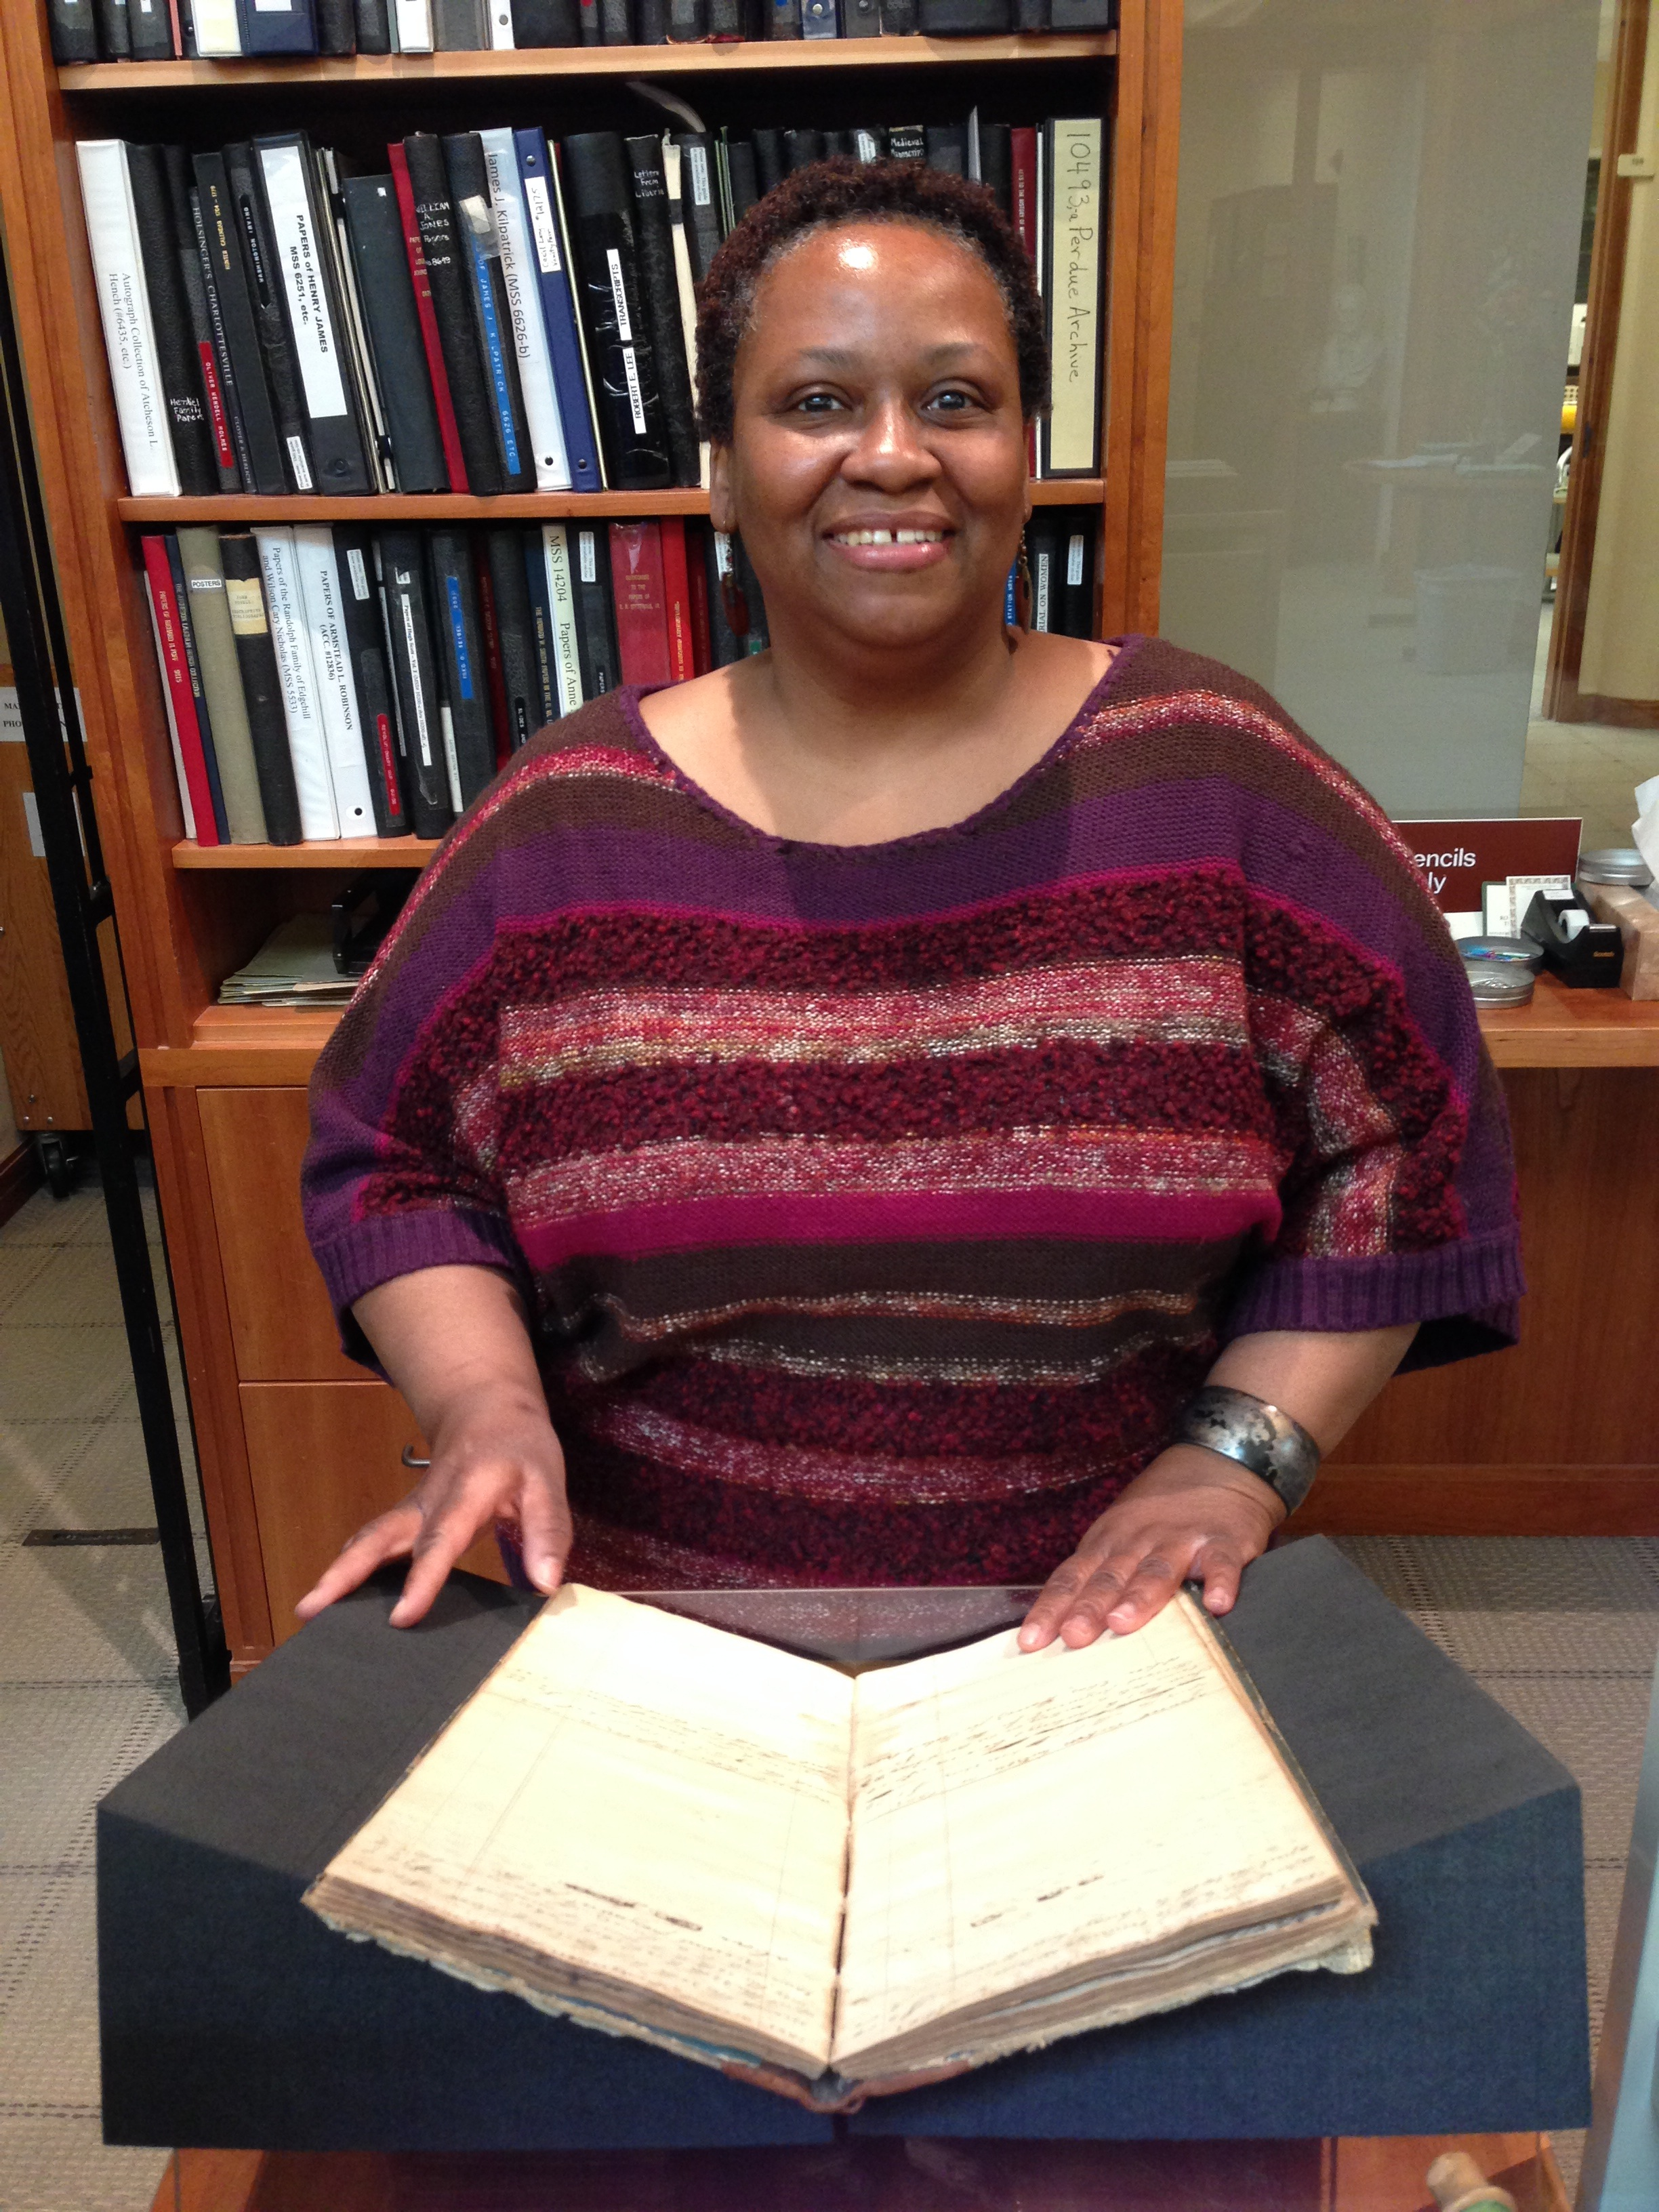 Regina Rush, Reference Coordinator, March 26, 2014. (Photograph by Molly Schwartzburg)